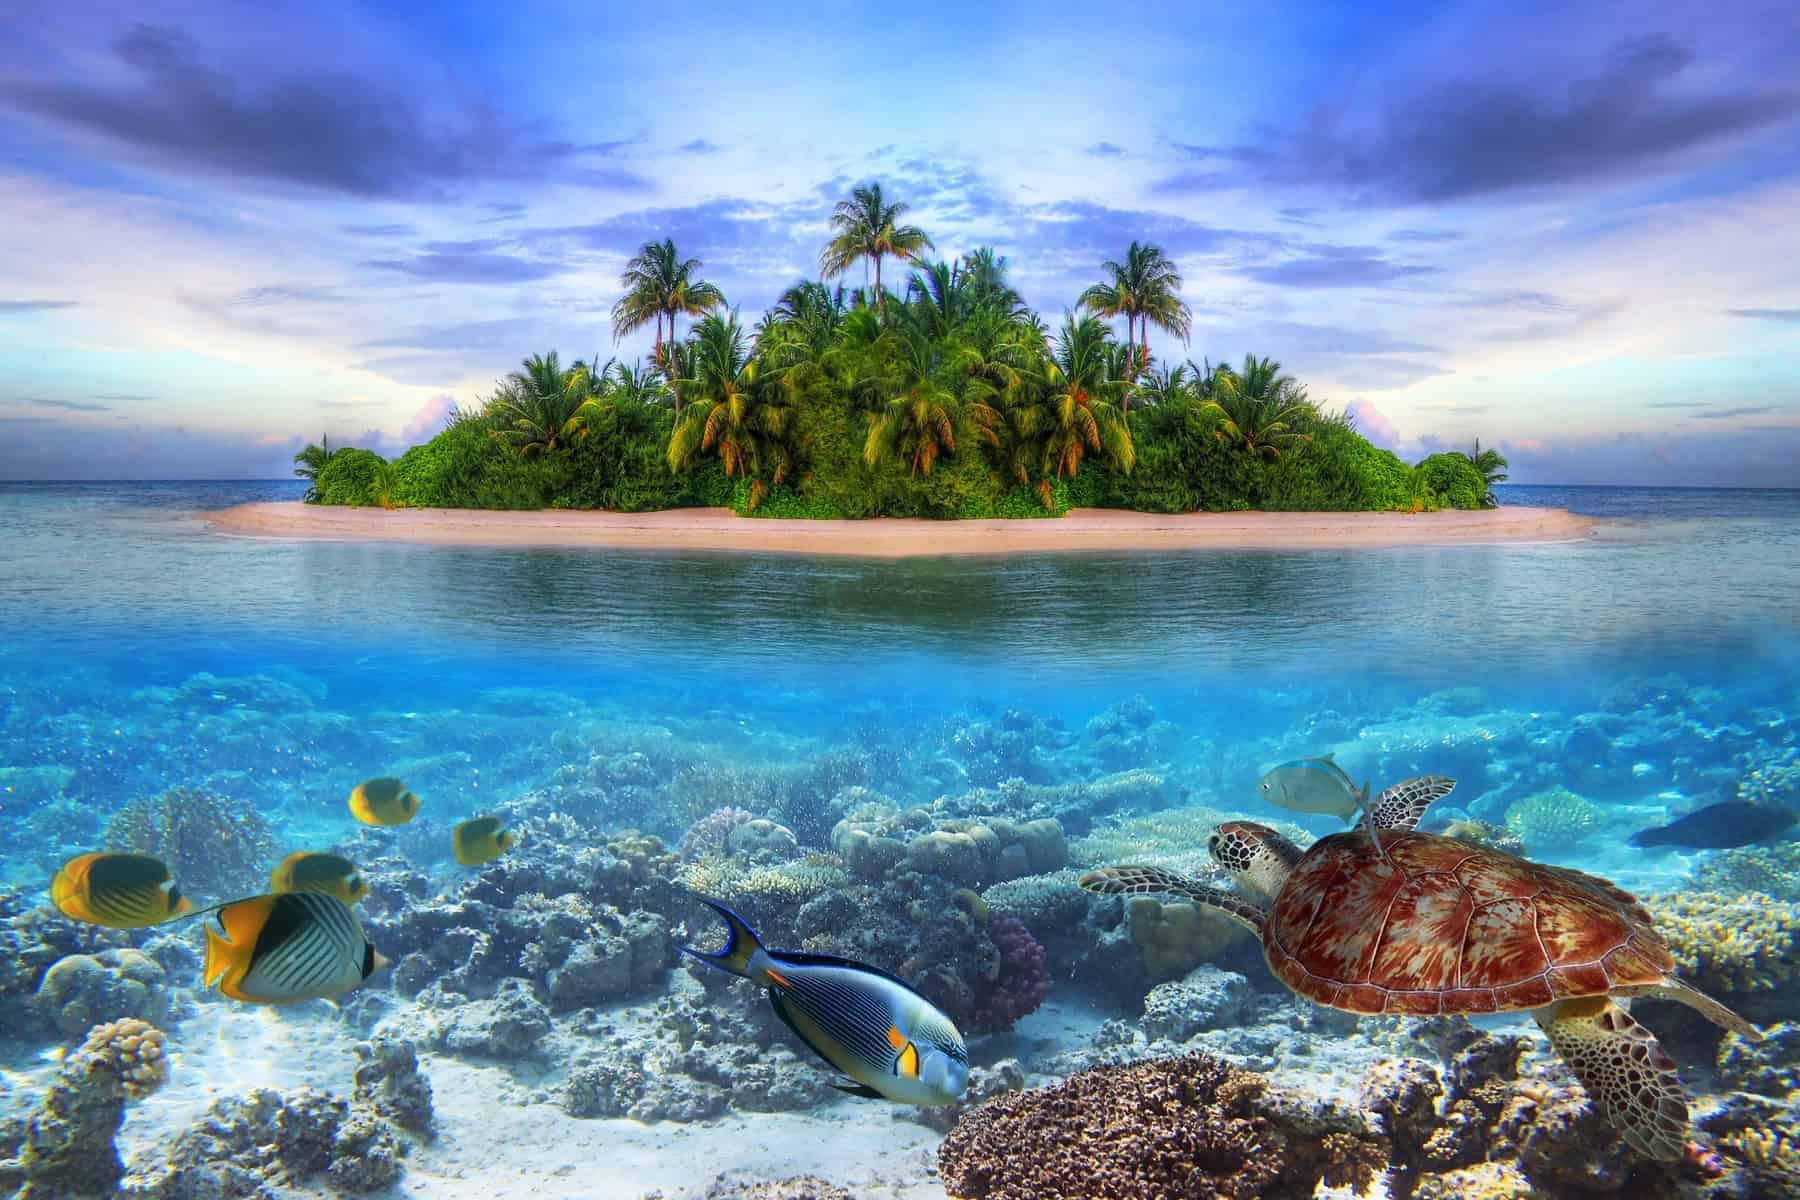 Smallest country in Asia, Maldives with amazing underwater life